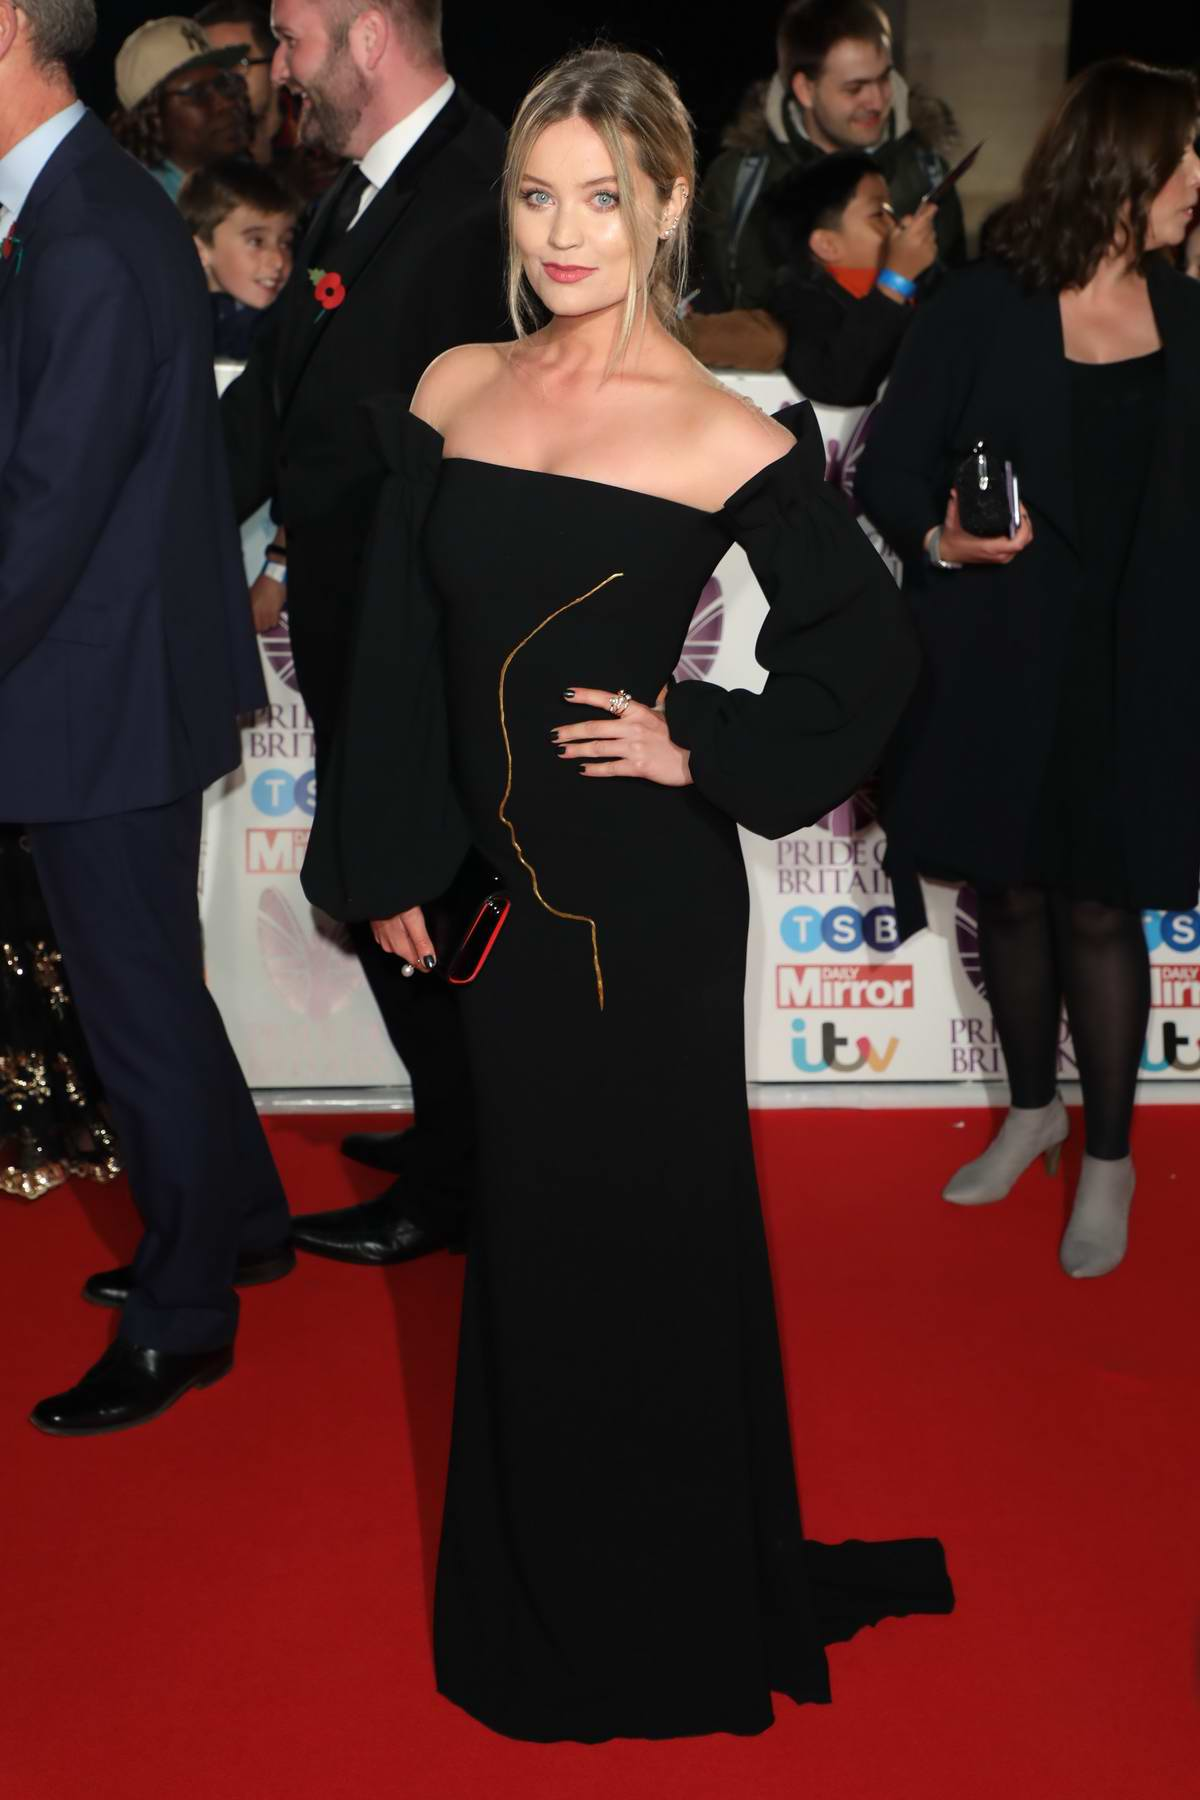 Laura Whitmore at the Pride of Britain Awards held at the Grosvenor House in London